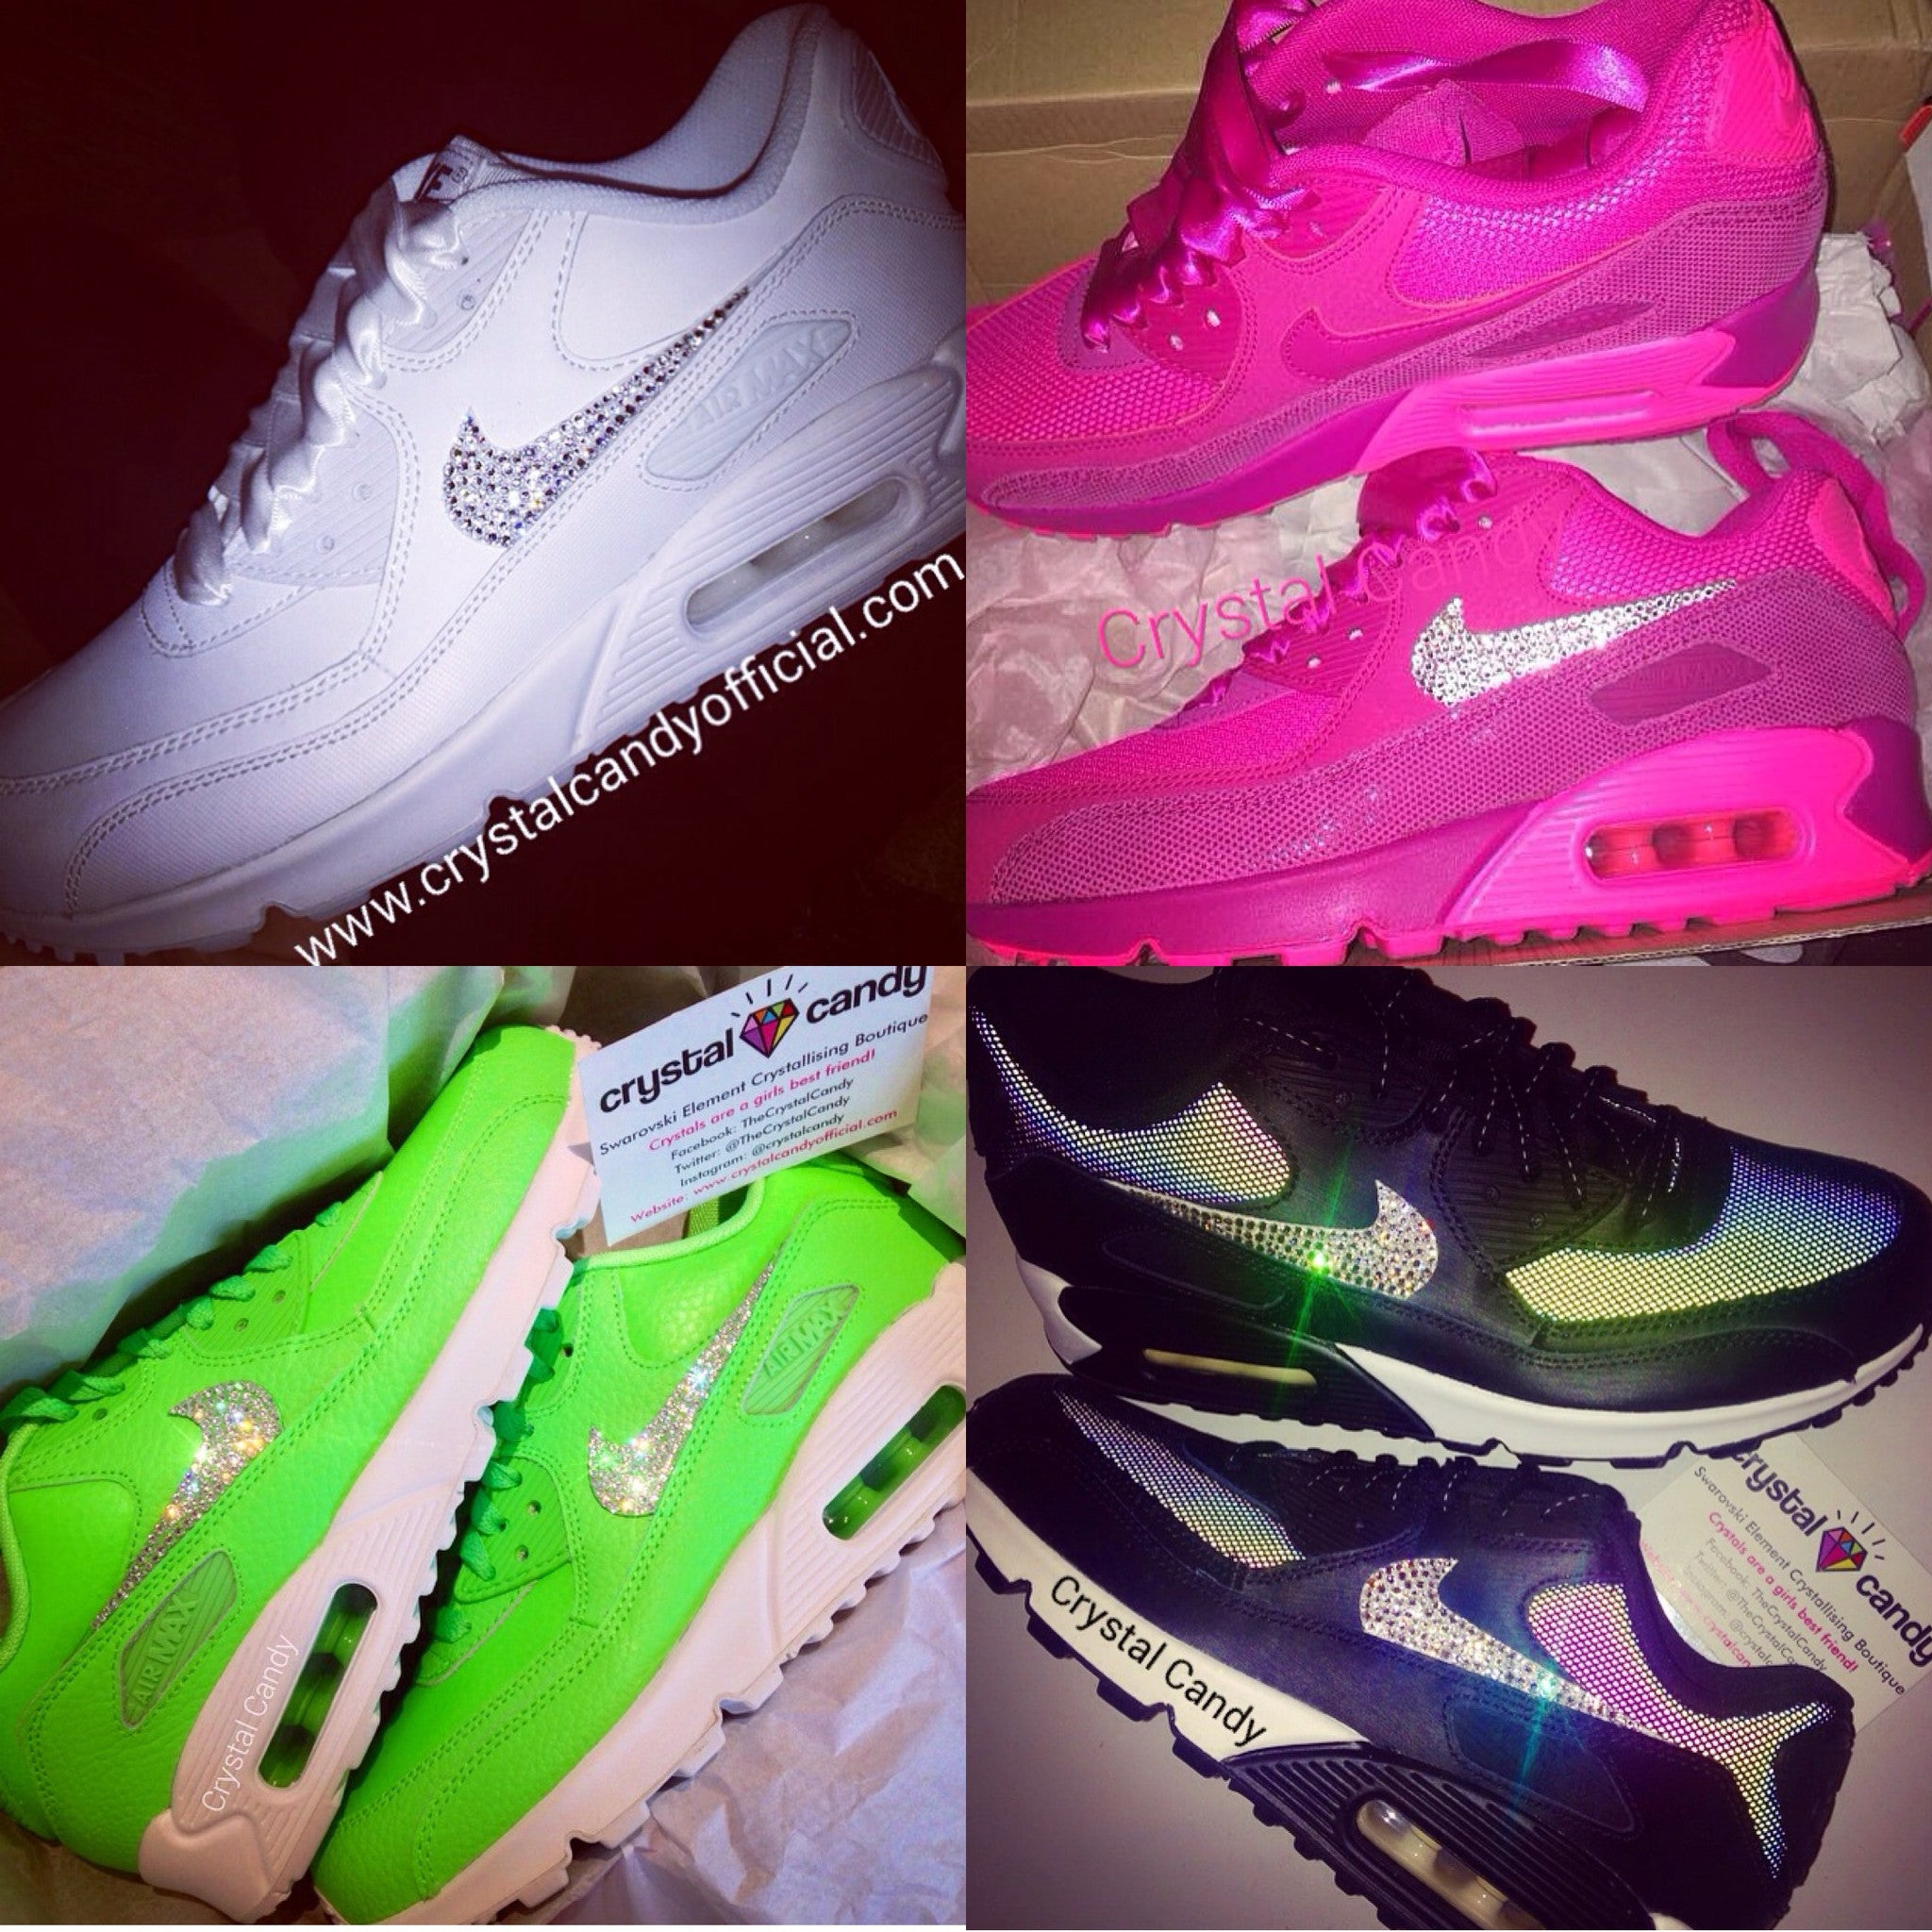 newest 0dede e37a4 Nike Air Max 90 (Ticks Only - Send Us Your Own) - Crystal Candy Limited